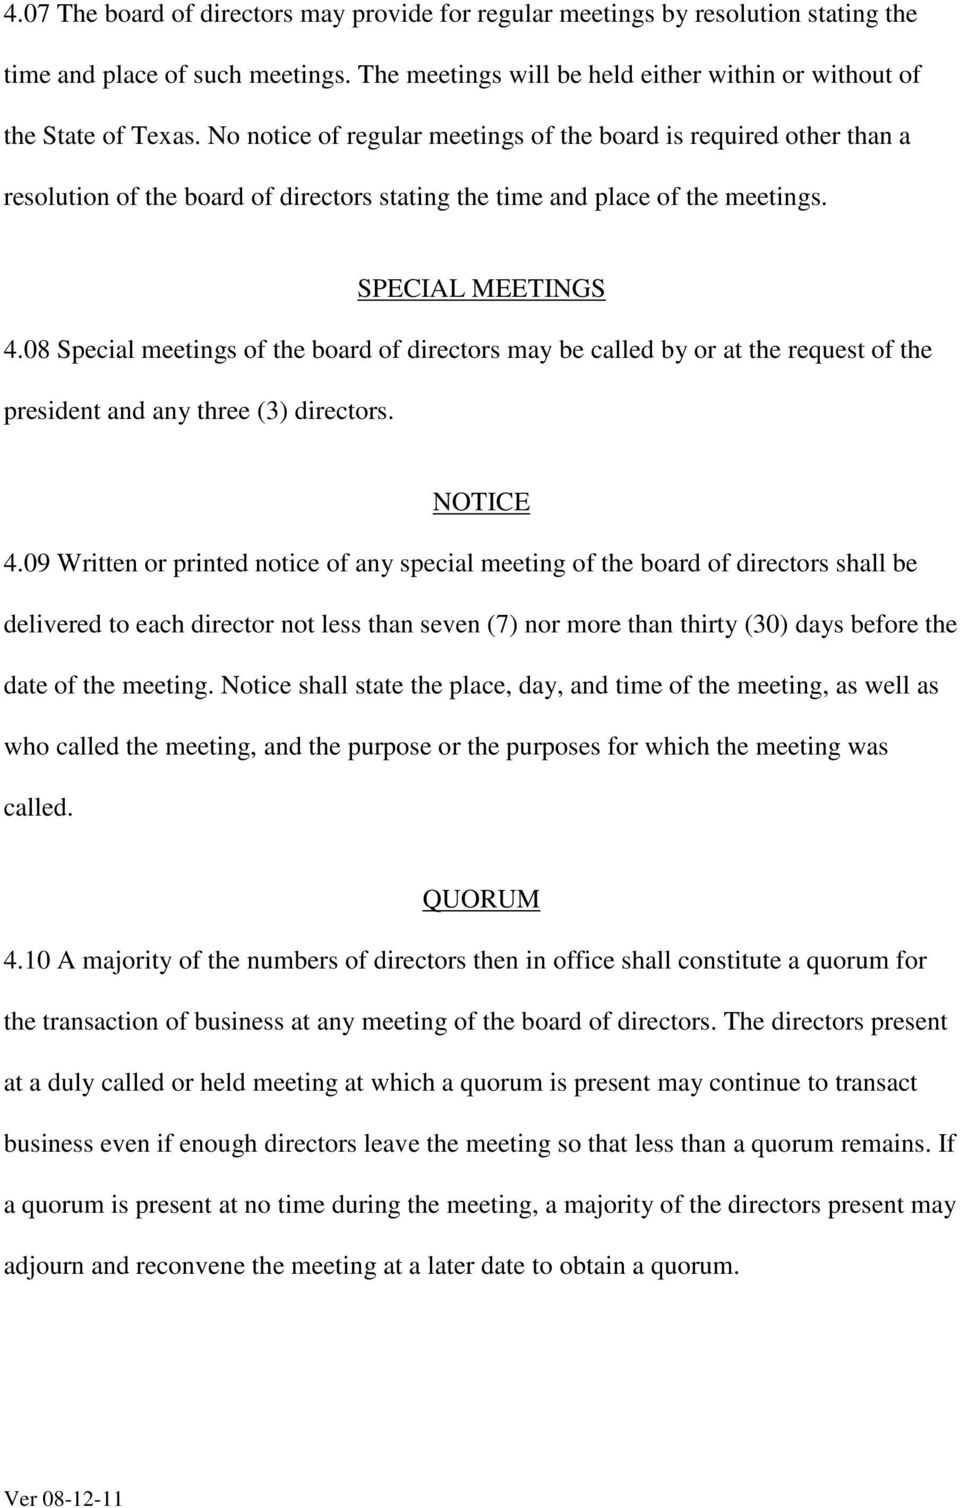 08 Special meetings of the board of directors may be called by or at the request of the president and any three (3) directors. NOTICE 4.